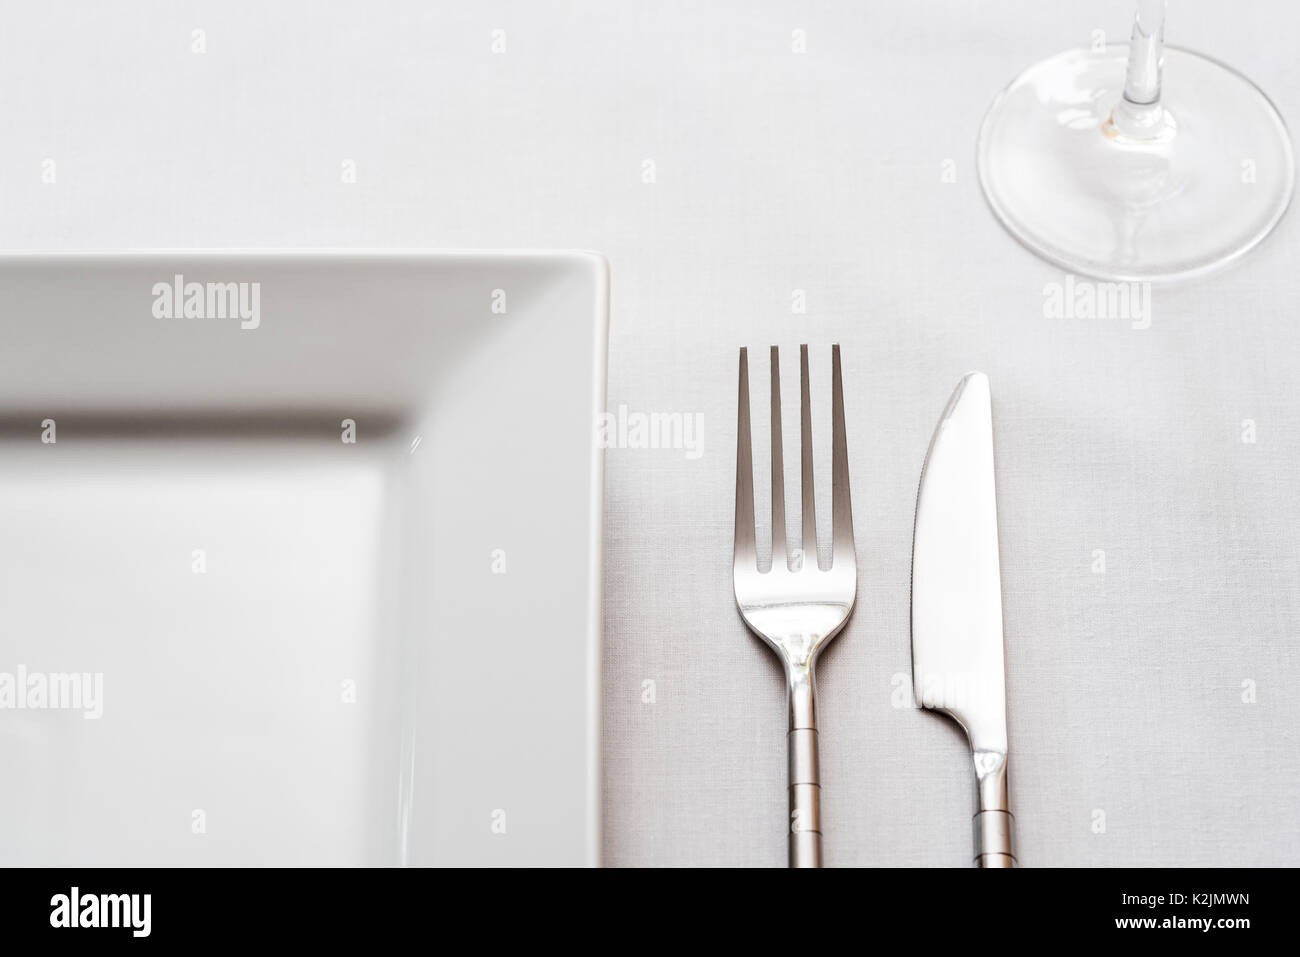 Single place table setting knife fork plate Stock Photo 156534161 - Alamy & Single place table setting knife fork plate Stock Photo: 156534161 ...